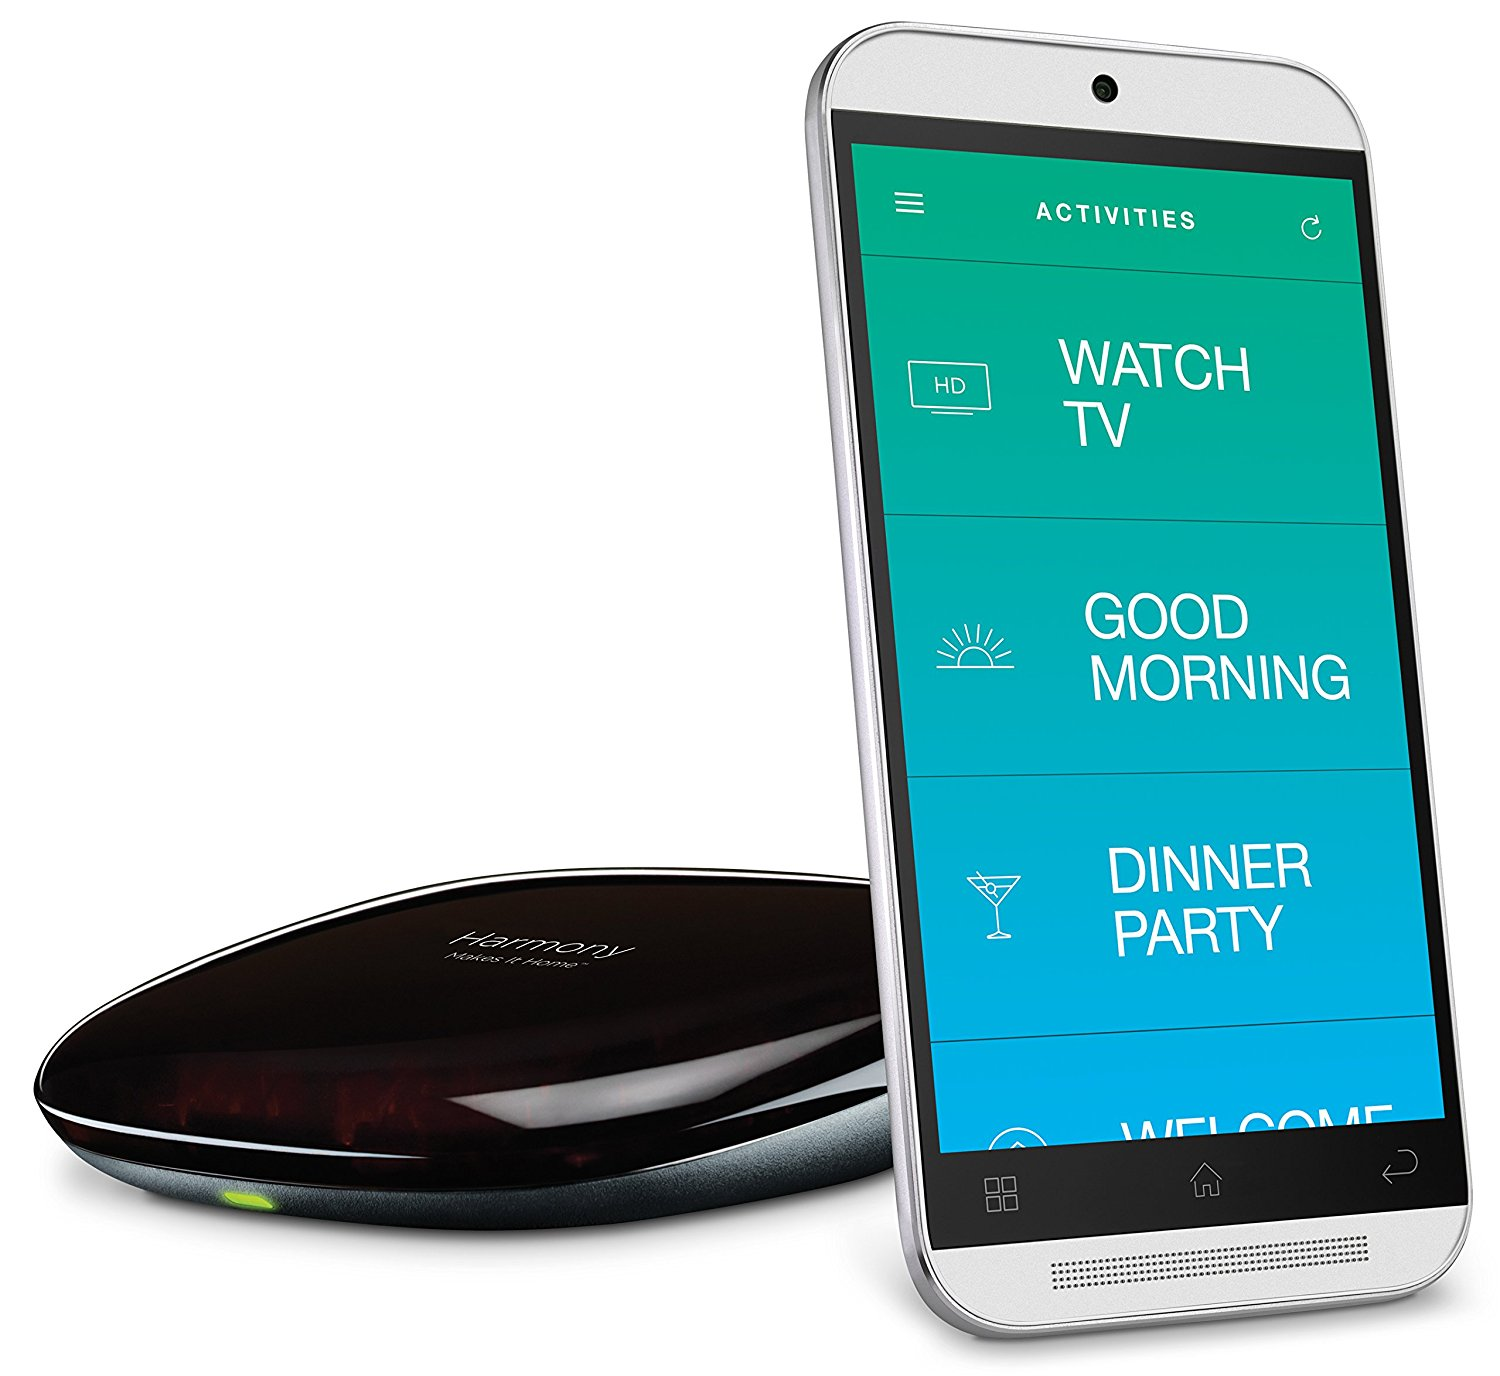 logitech-harmony-home-hub-for-smartphone-control-of-8-home-entertainment-and-automation-devices-works-with-alexa-budget-universal-standard-remotes-for-home-theaters